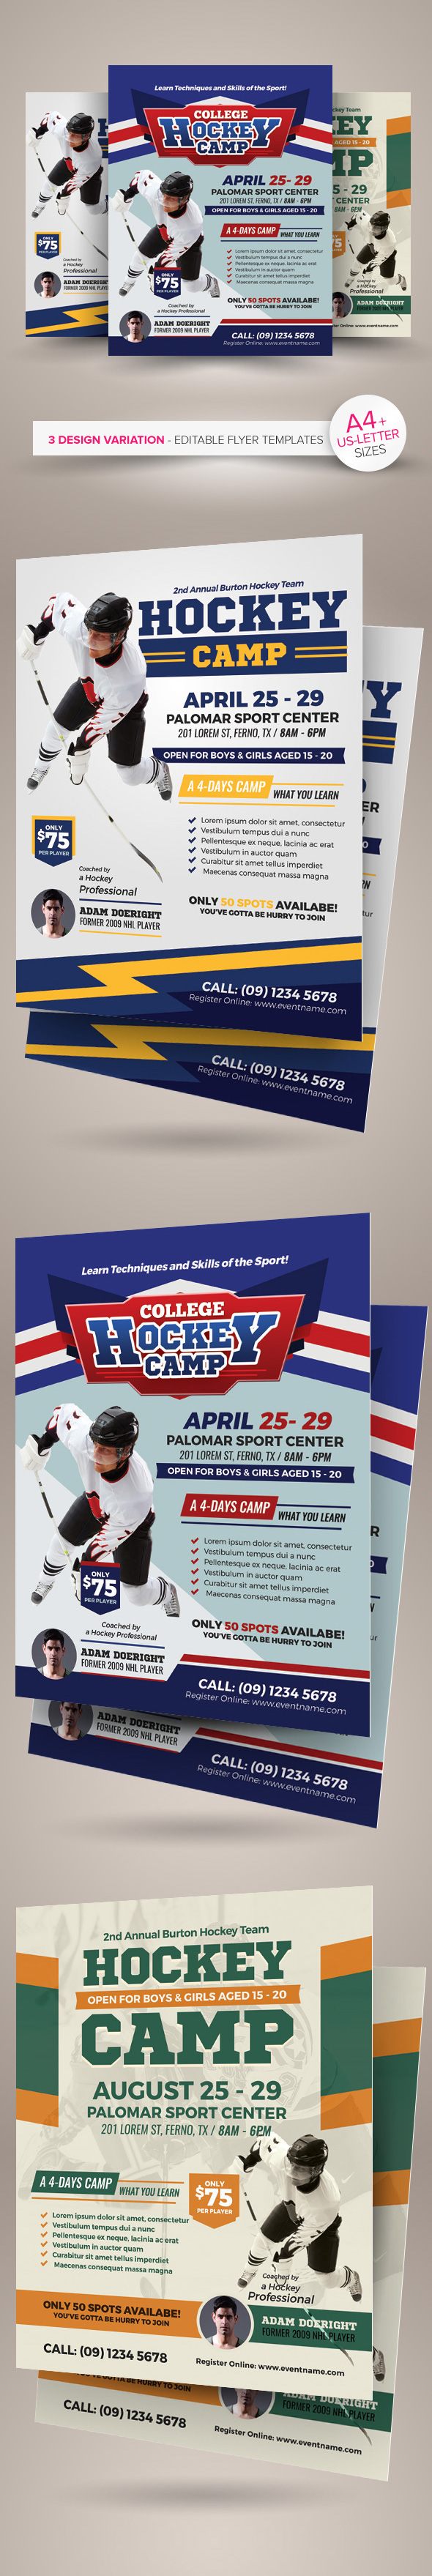 hockey camp flyer templates on behance hockey camp flyer templates are fully editable design templates created for on graphic river more info of the templates and how to get the sourcefile